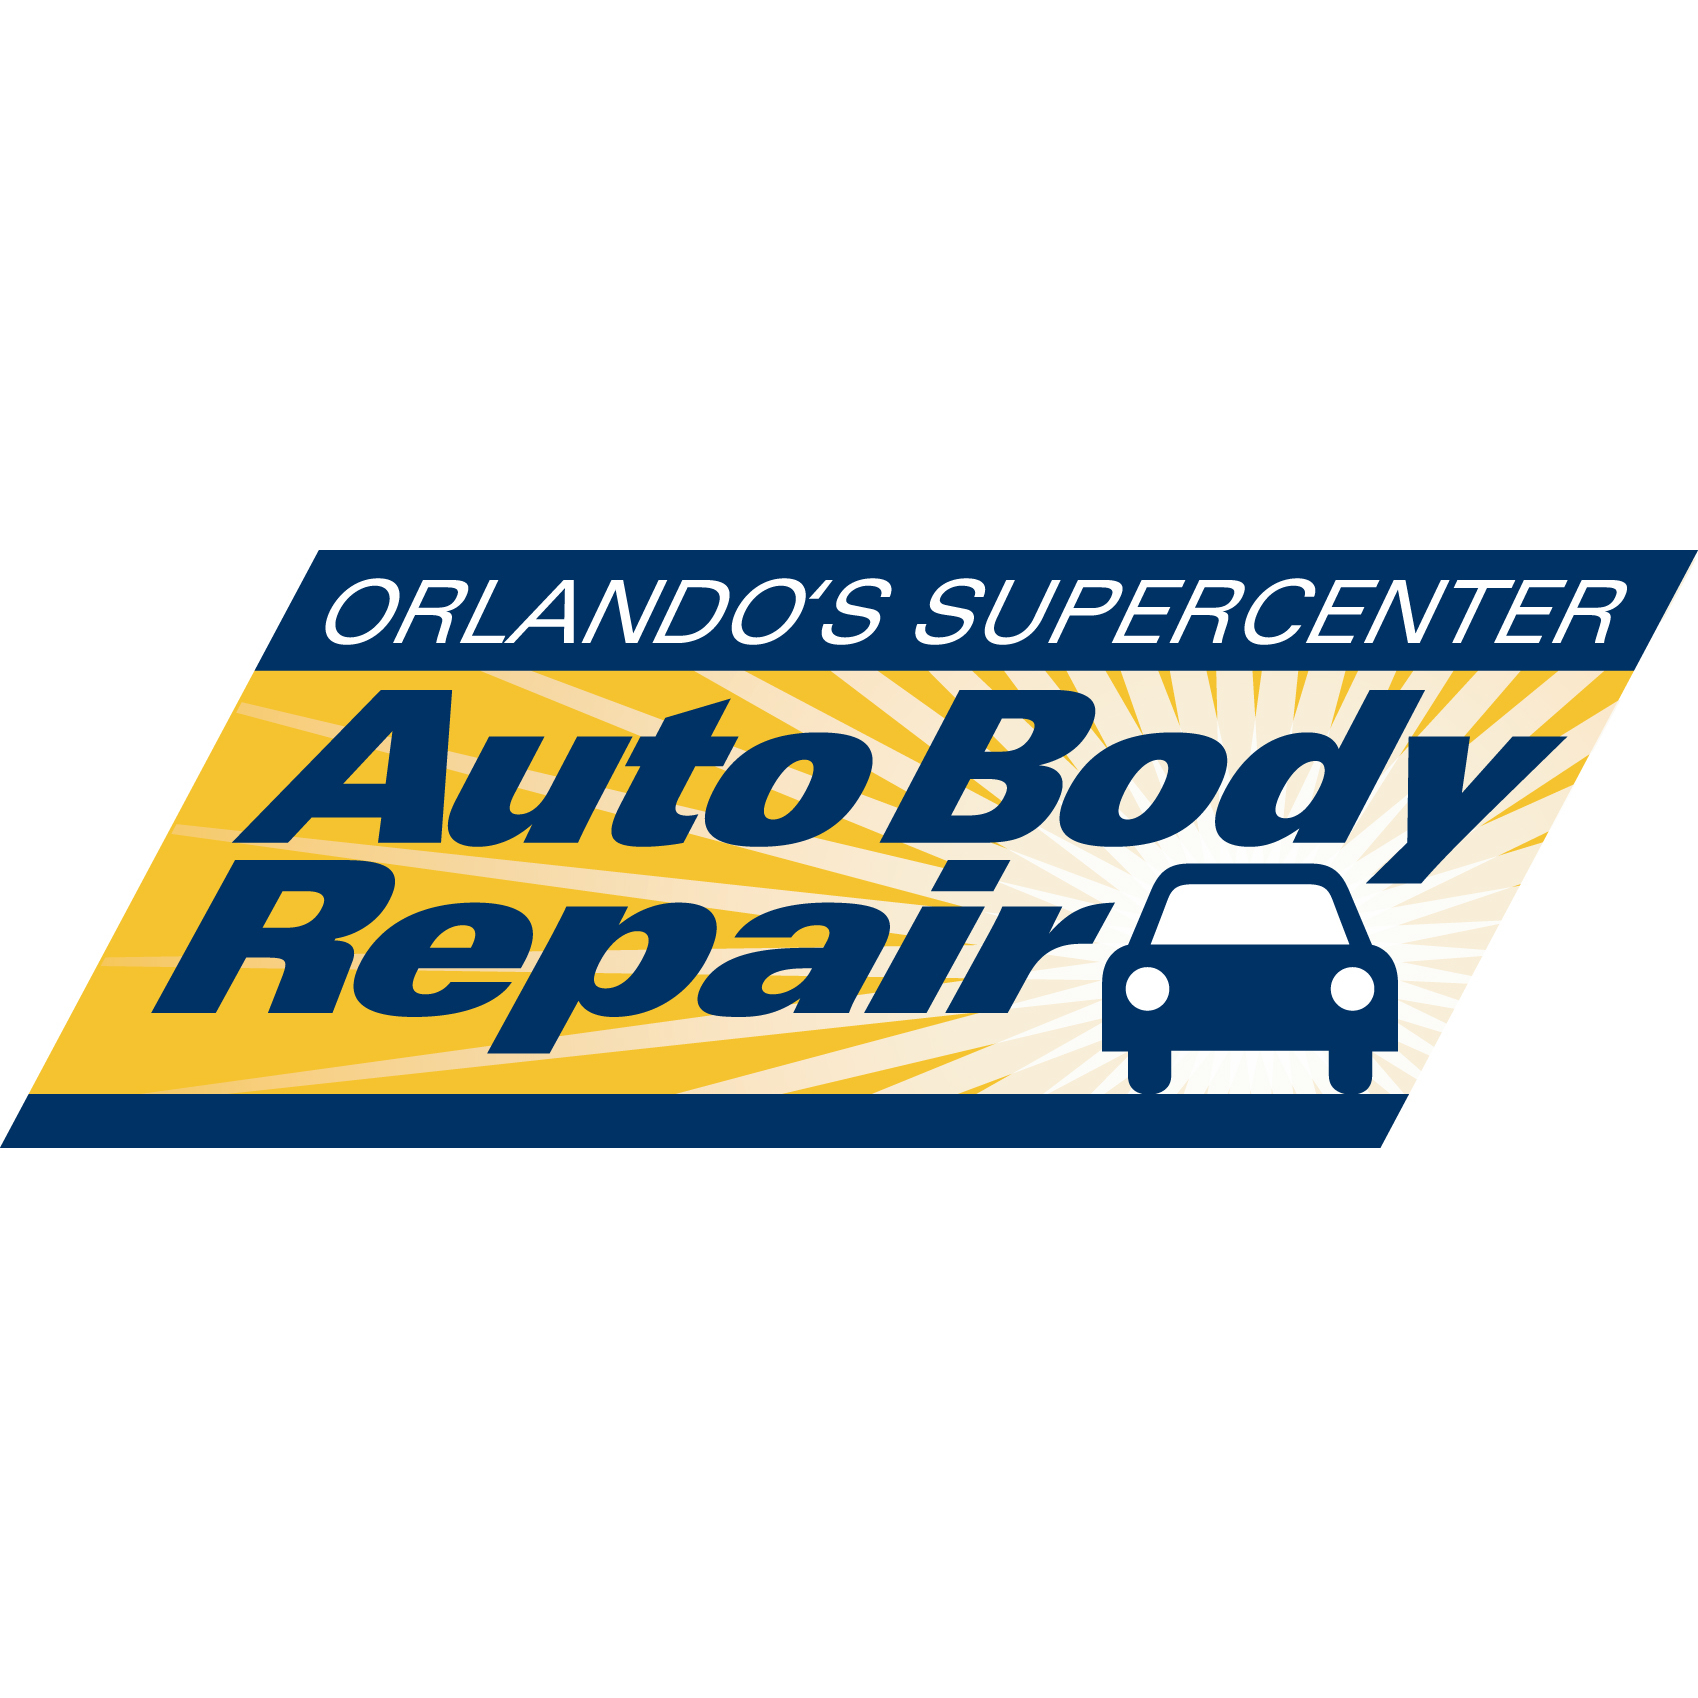 Orlando's Super Center Auto Body Repair, Altamonte Springs